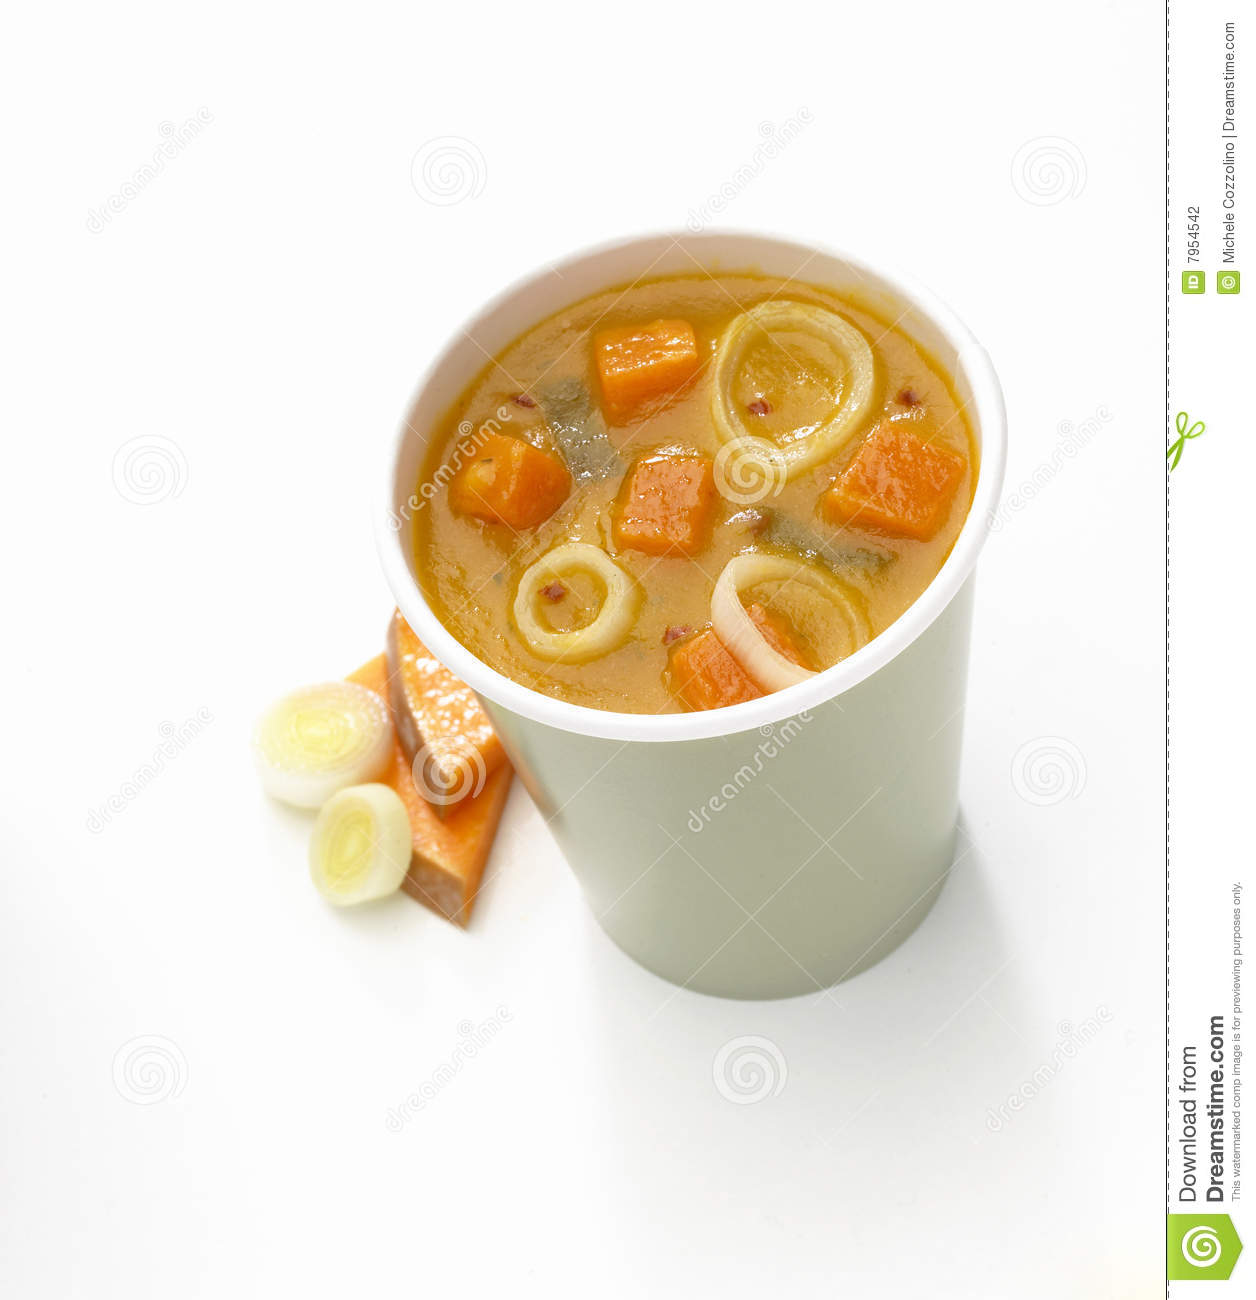 Cup of soup stock photography image 7954542